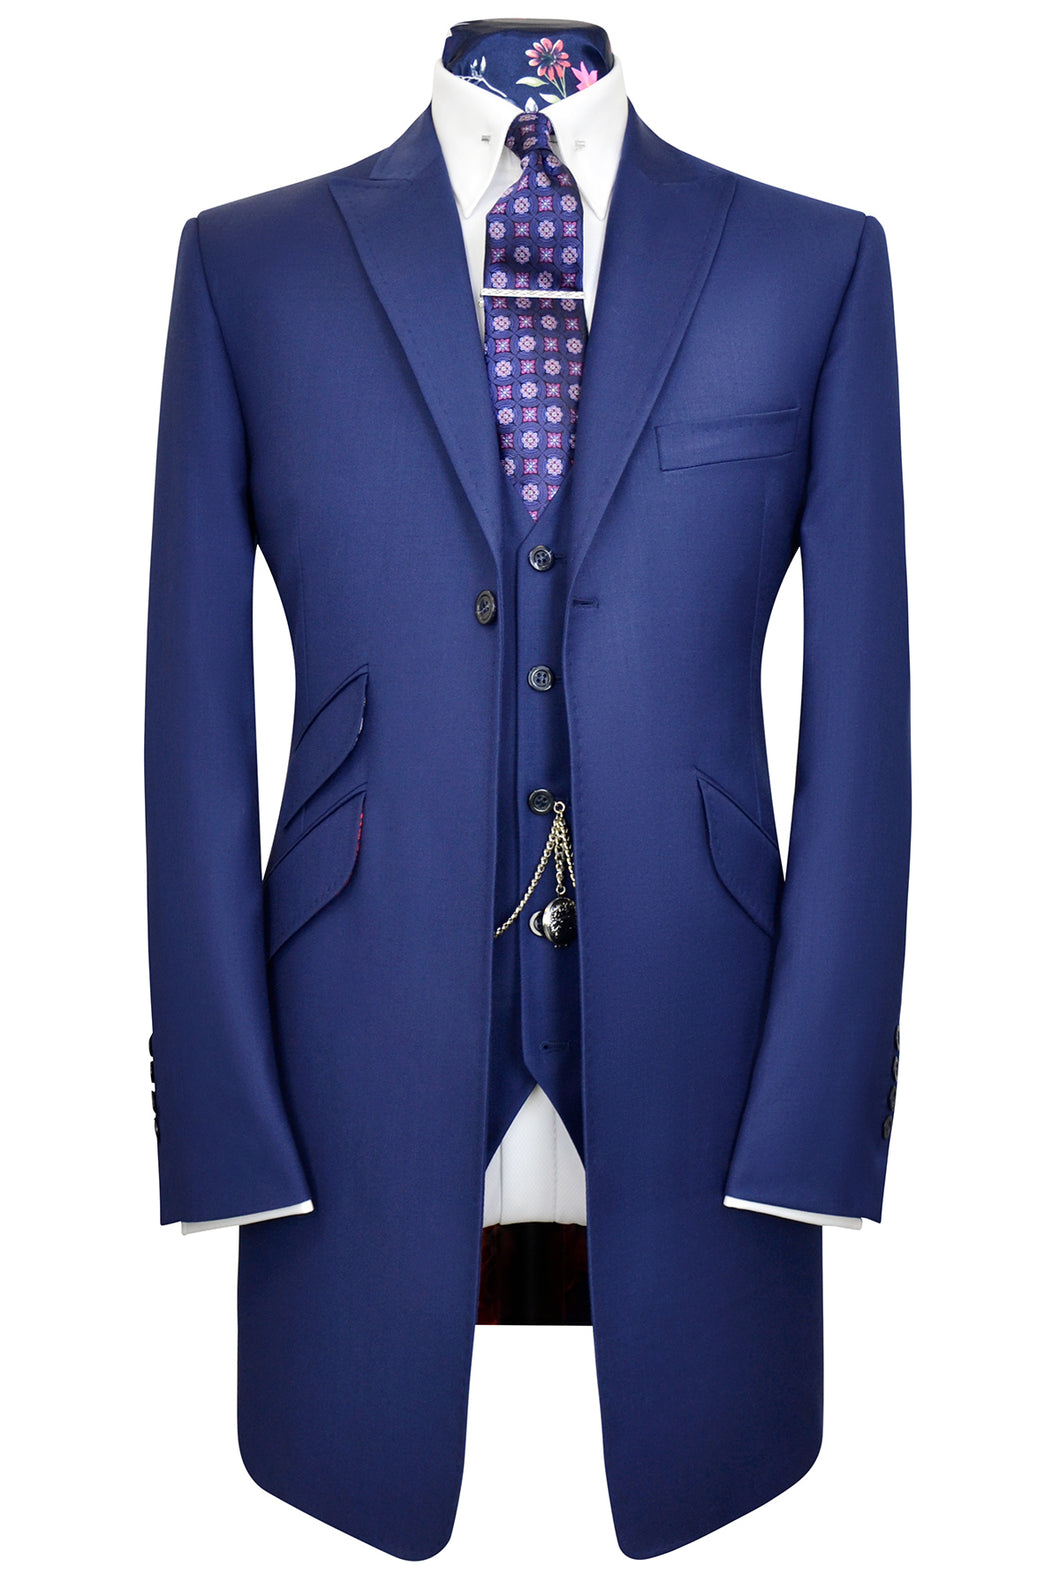 Zaffre blue three piece peak lapel frock coat suit